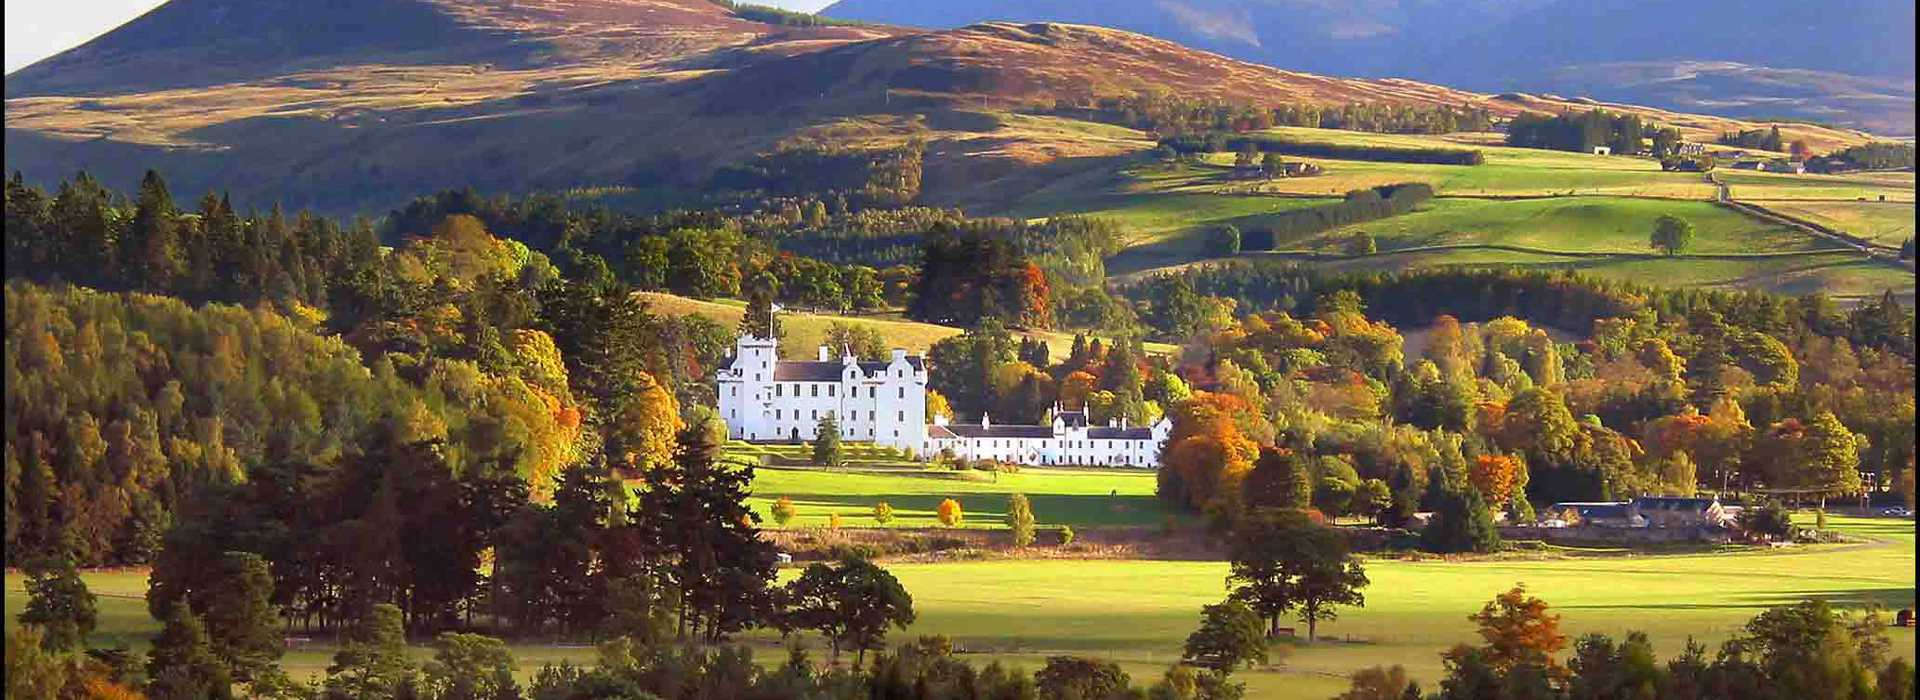 Highland Perthshire history and heritage